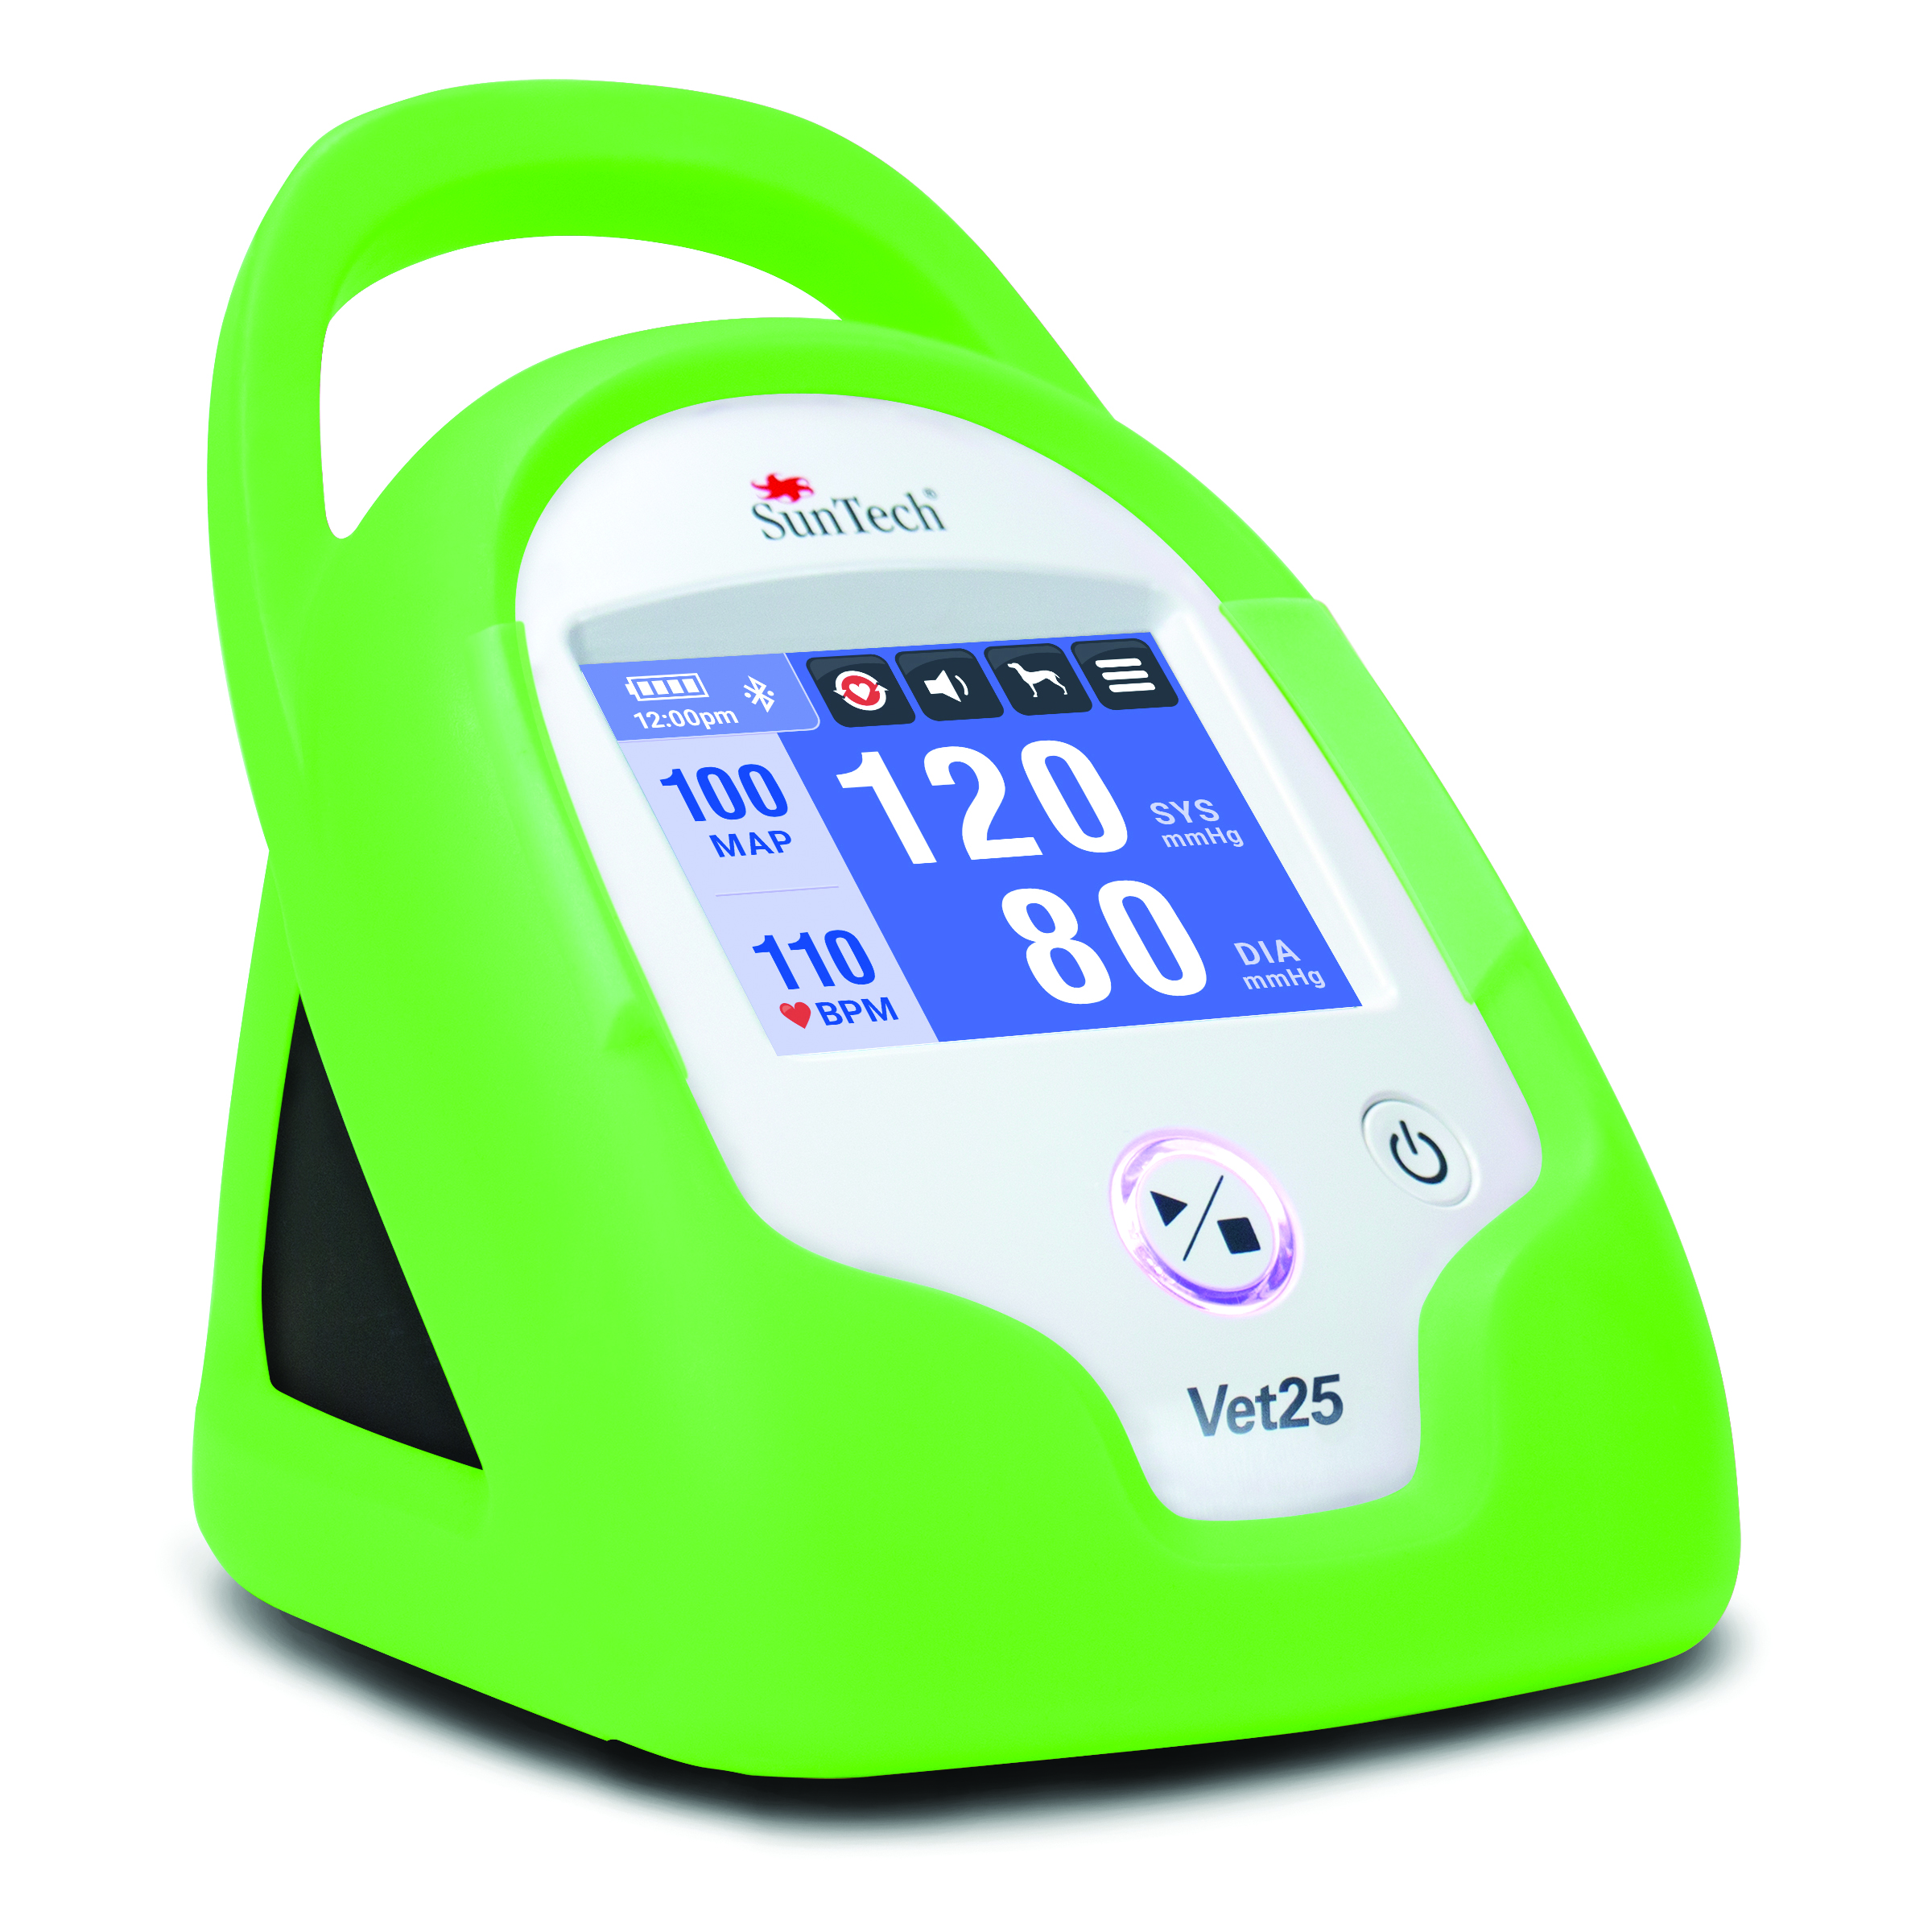 SunTech Vet25 Monitor w/SunTech BP, Tree Frog Green Armour